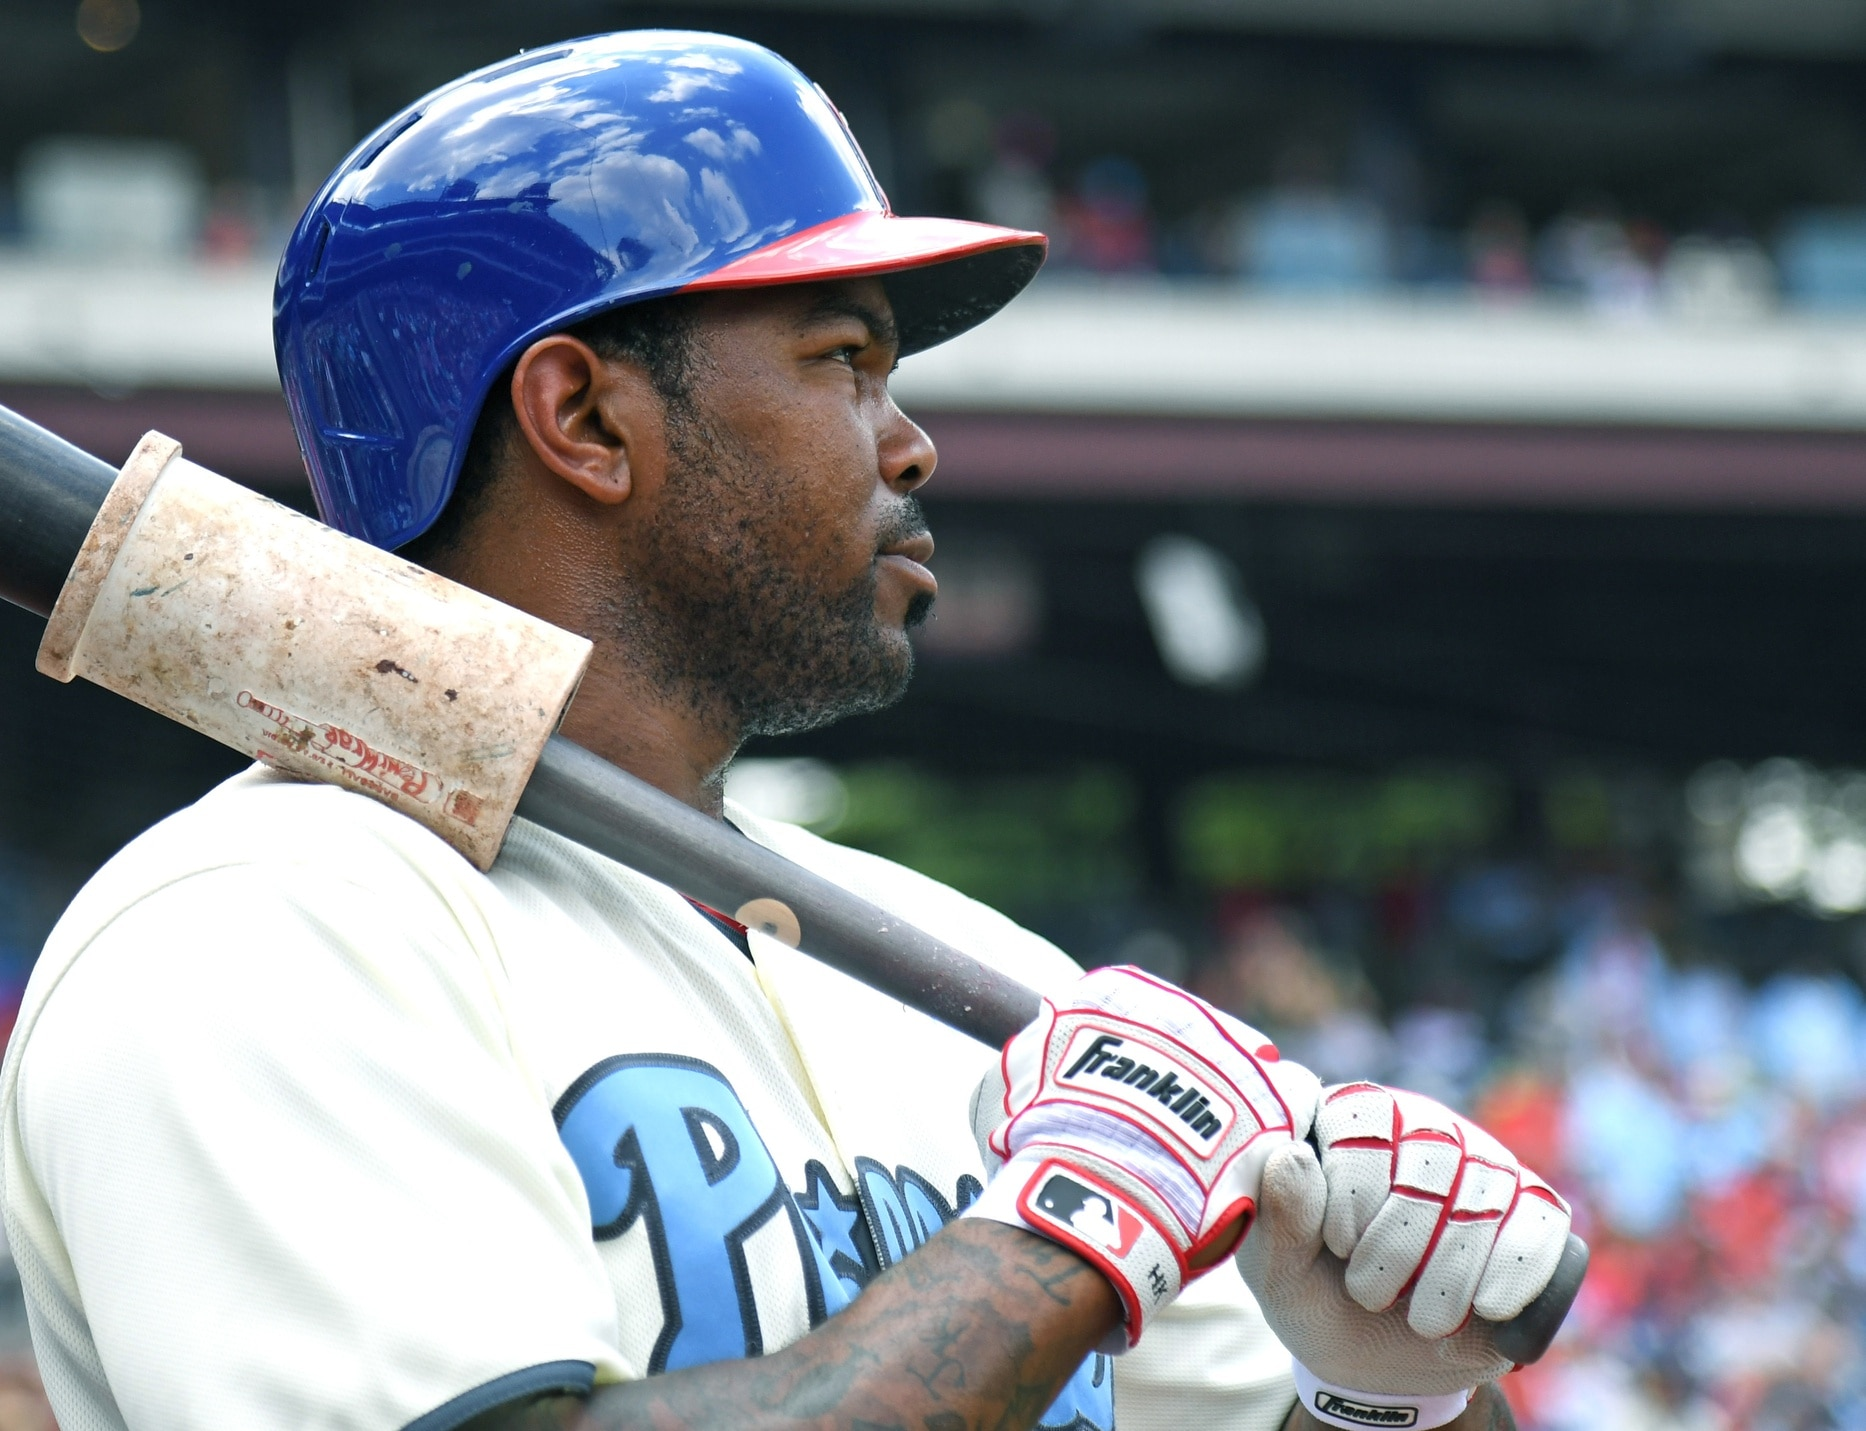 The Phillies have traded veteran Howie Kendrick to the division rival Nationals.